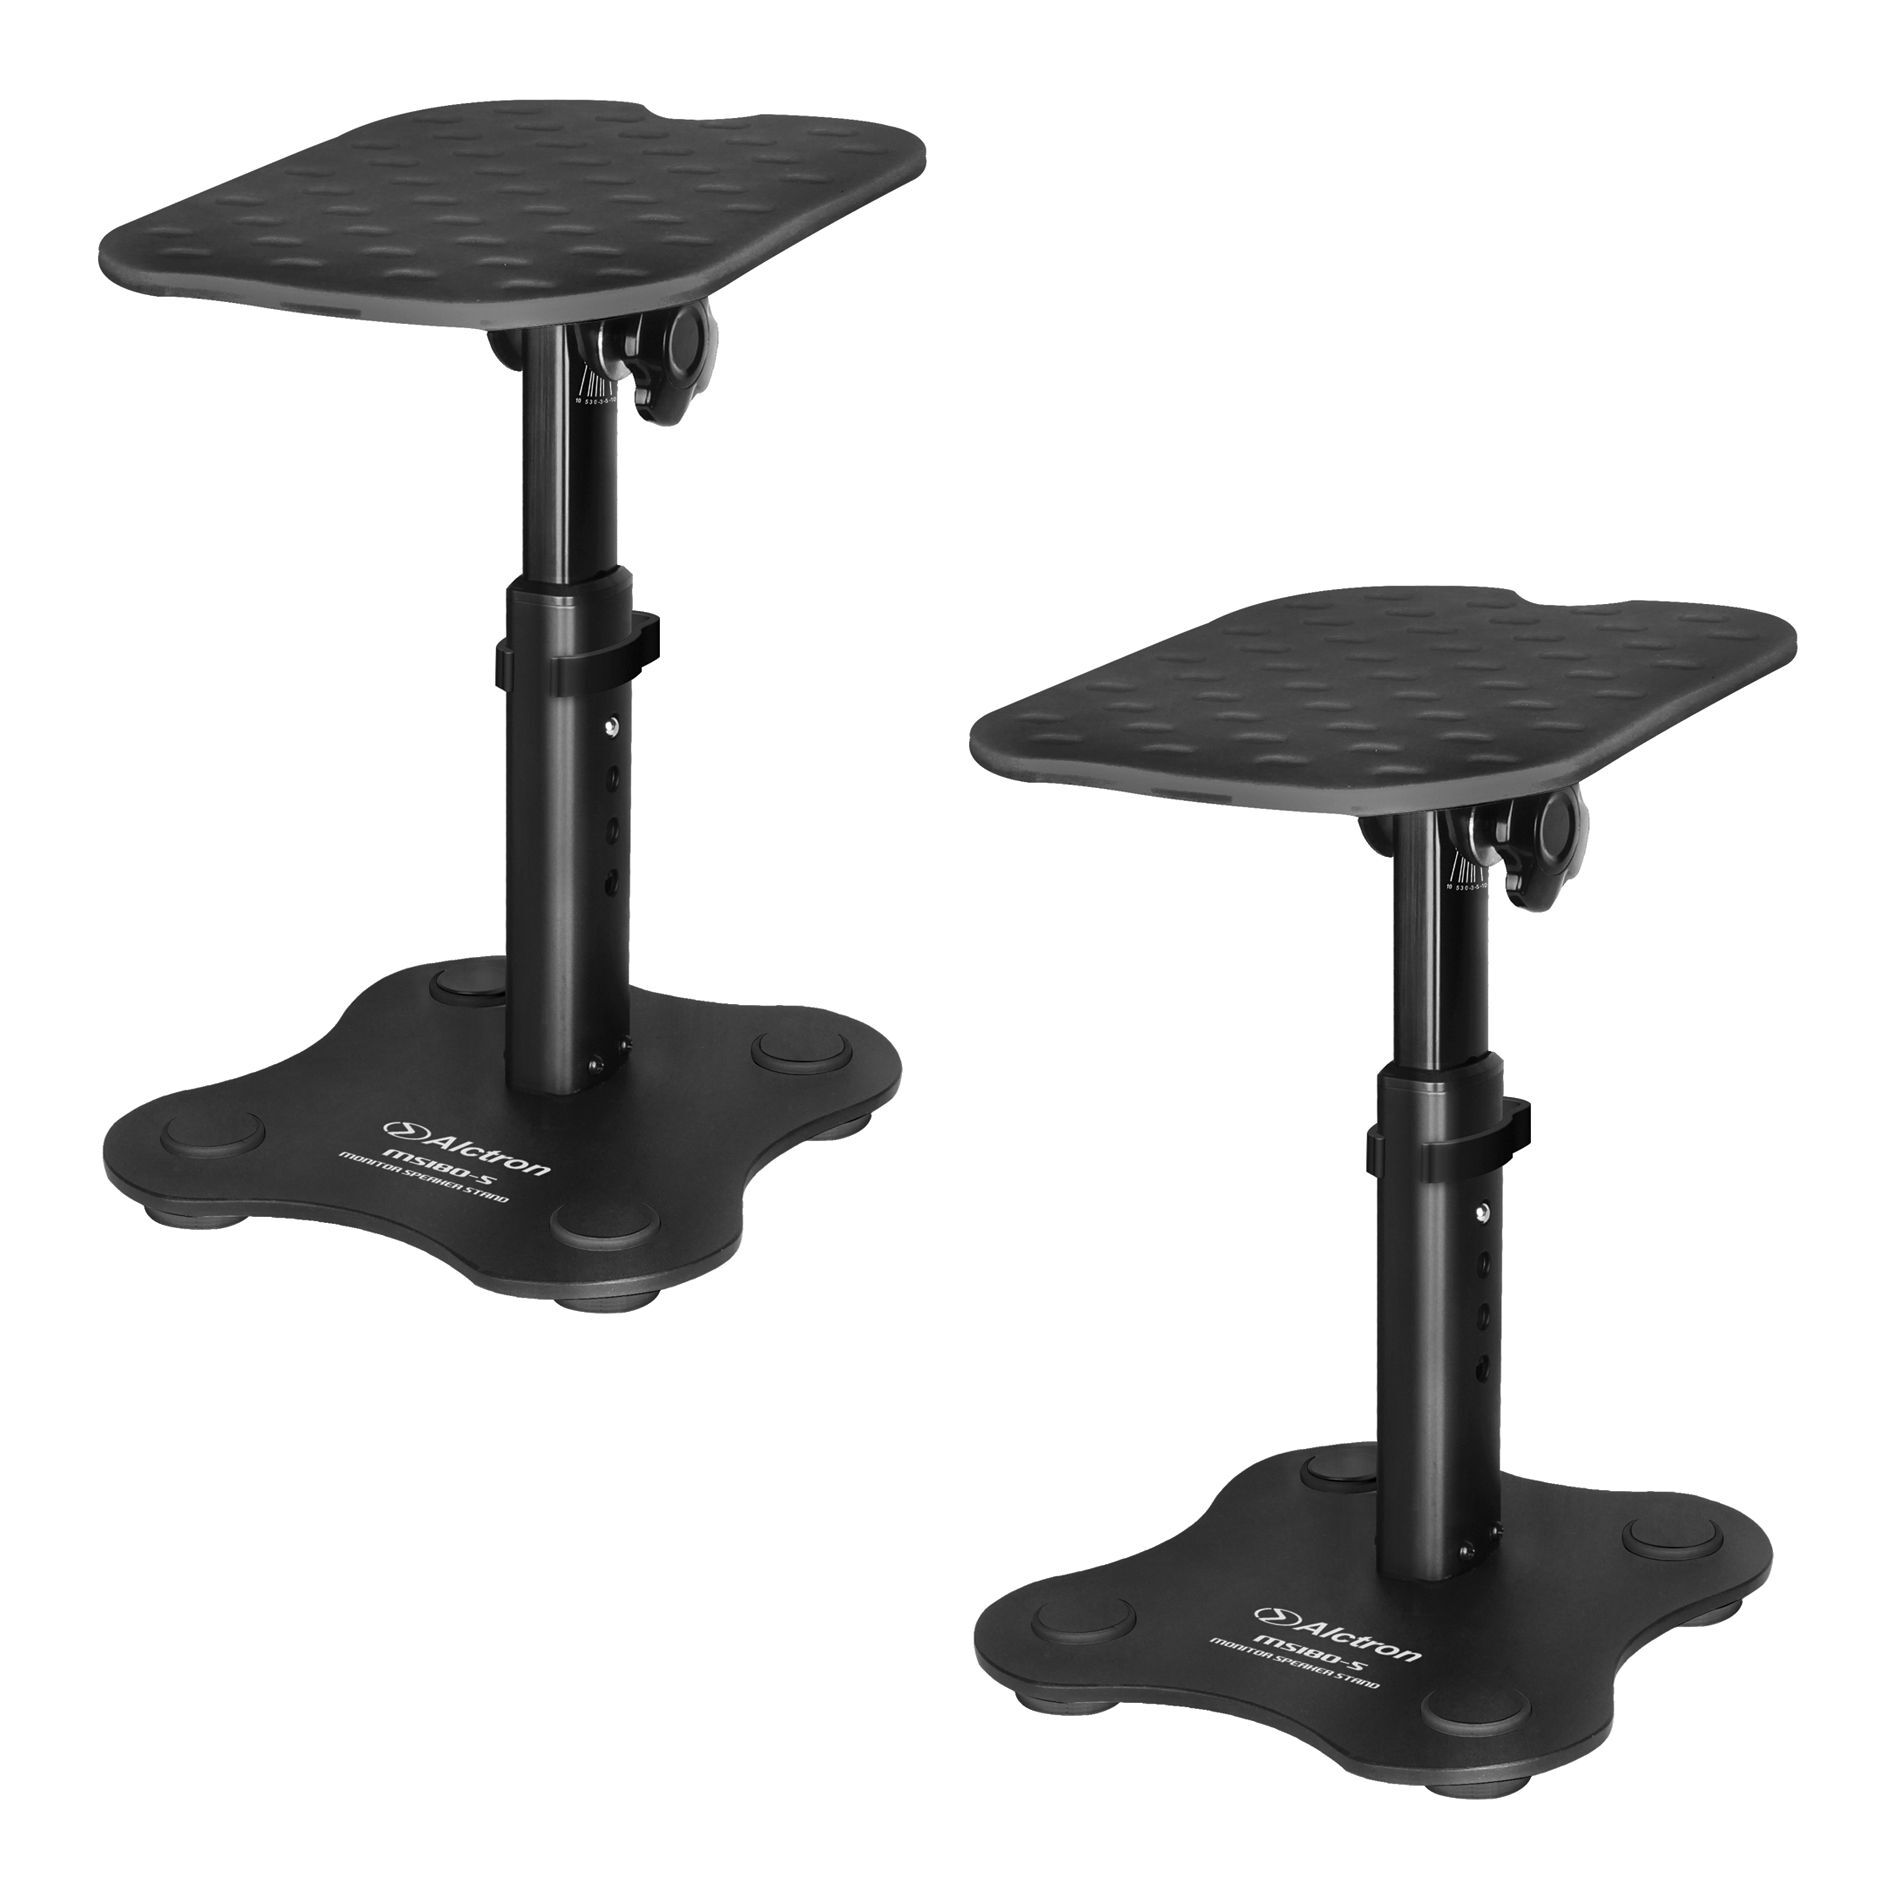 Alctron MS180-5 Desktop Speaker Stand - Pair